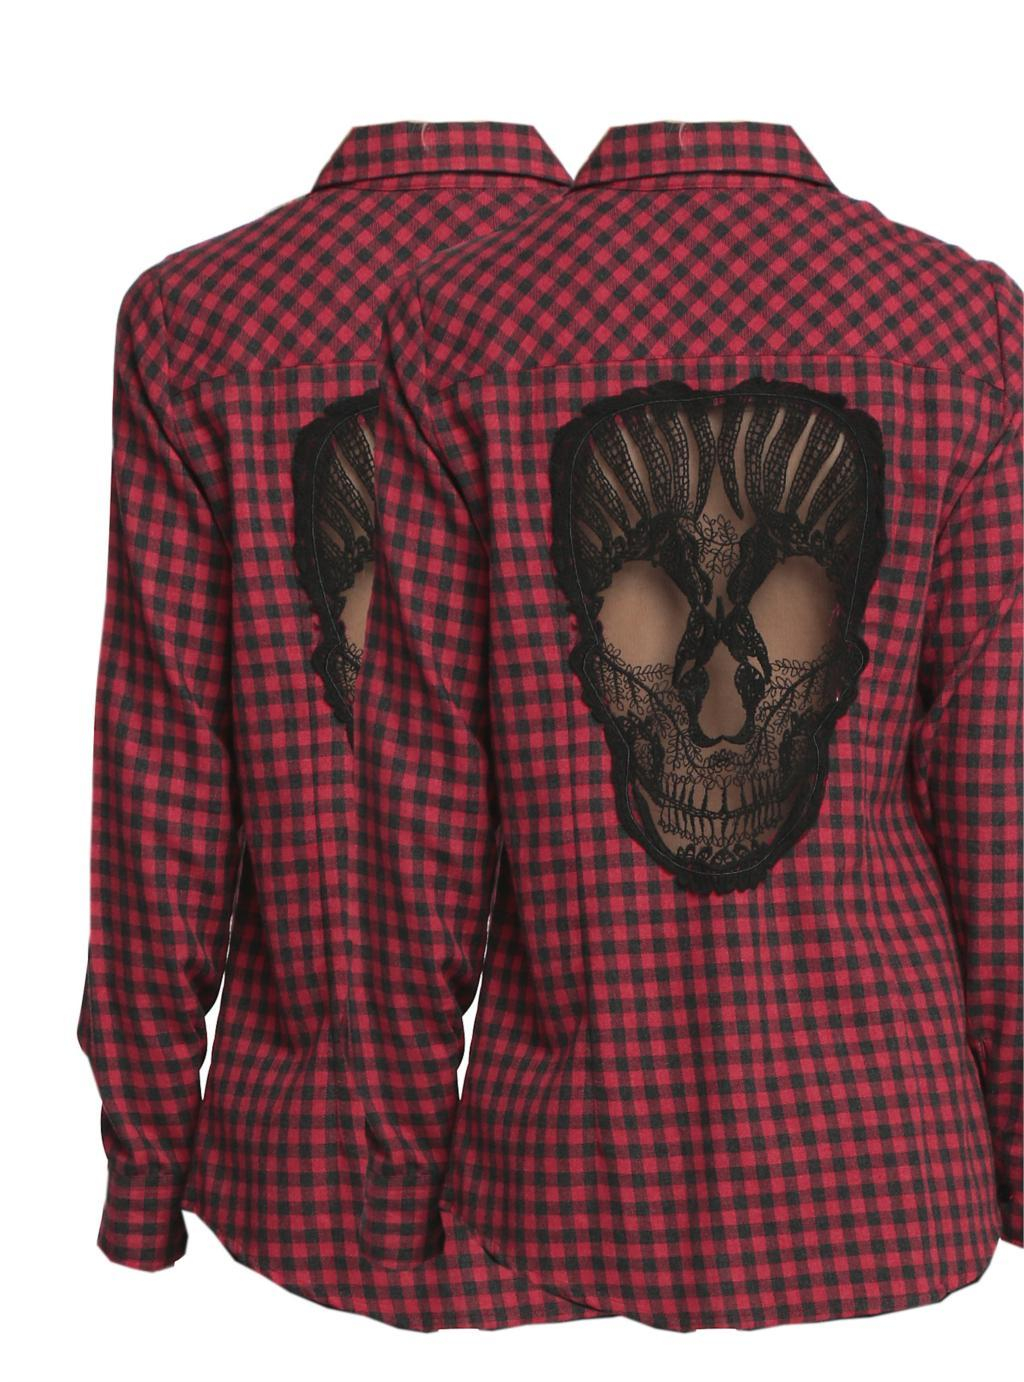 KillPunk™ - Skull Hollow Out Shirt double red back view